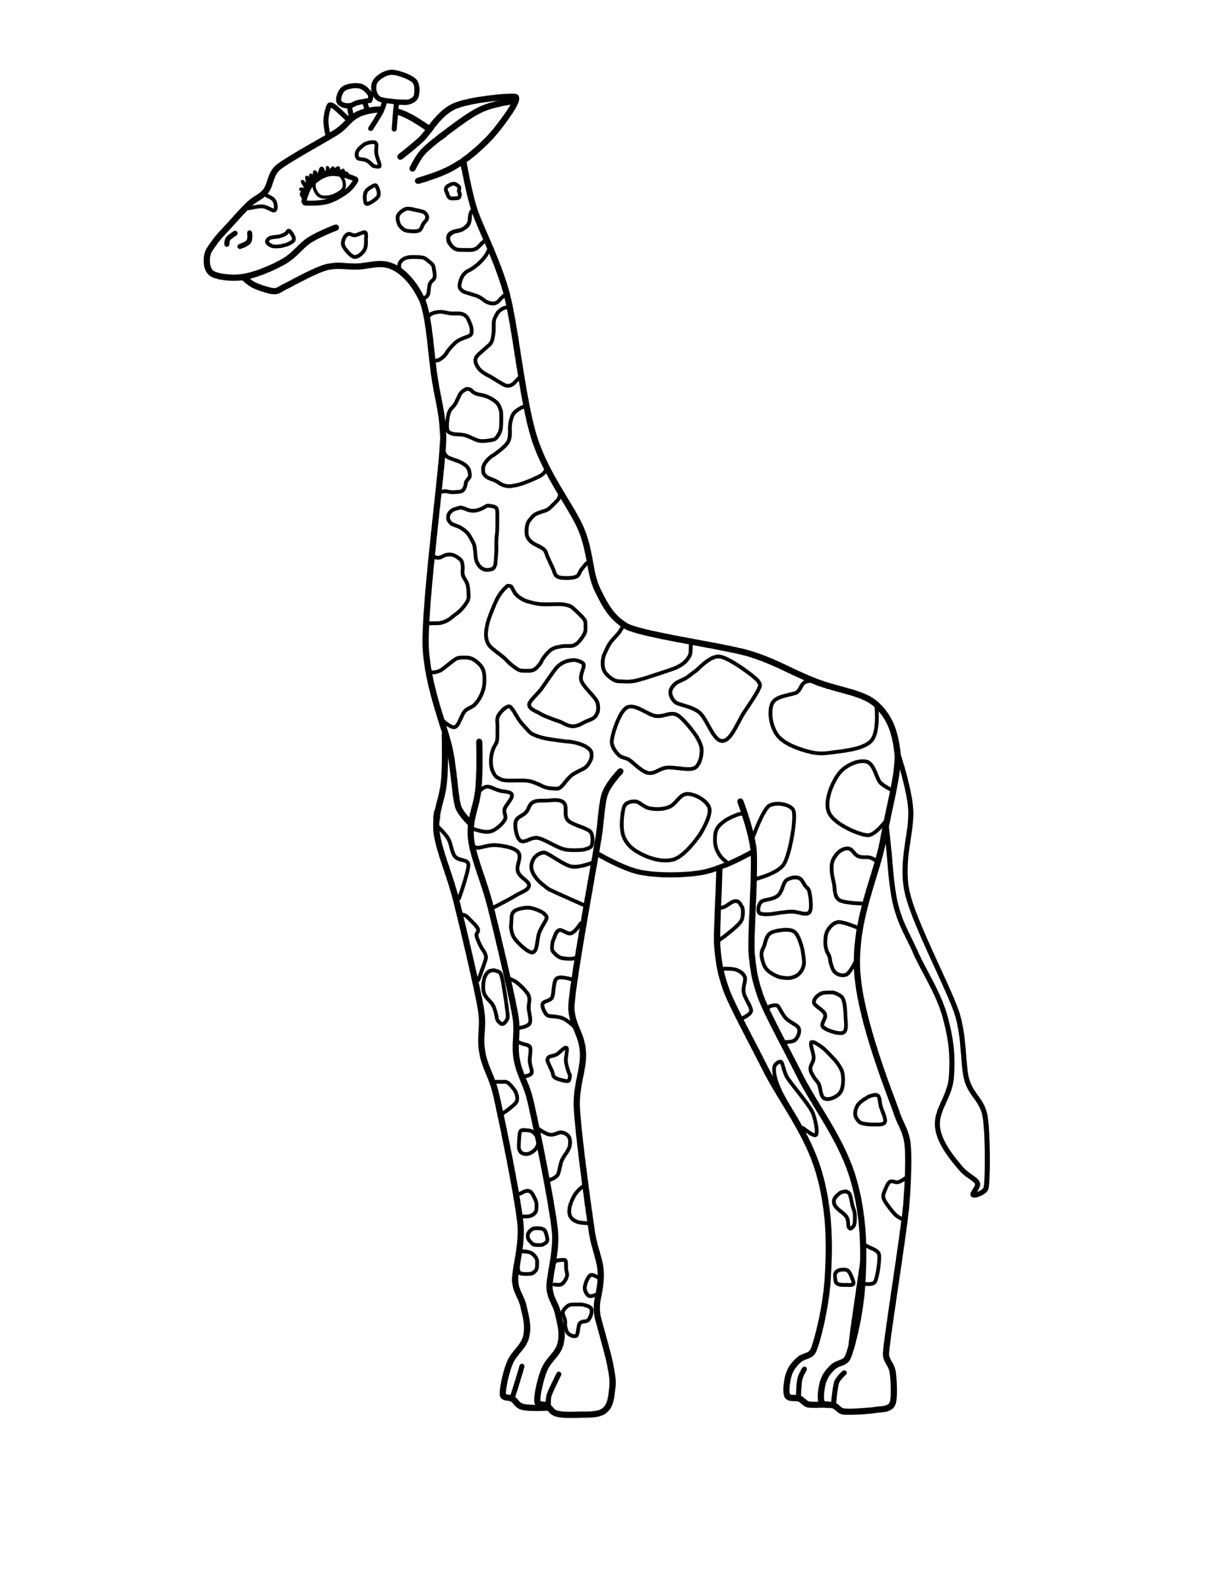 coloring pages of girafes | Free Printable Giraffe Coloring Pages For Kids